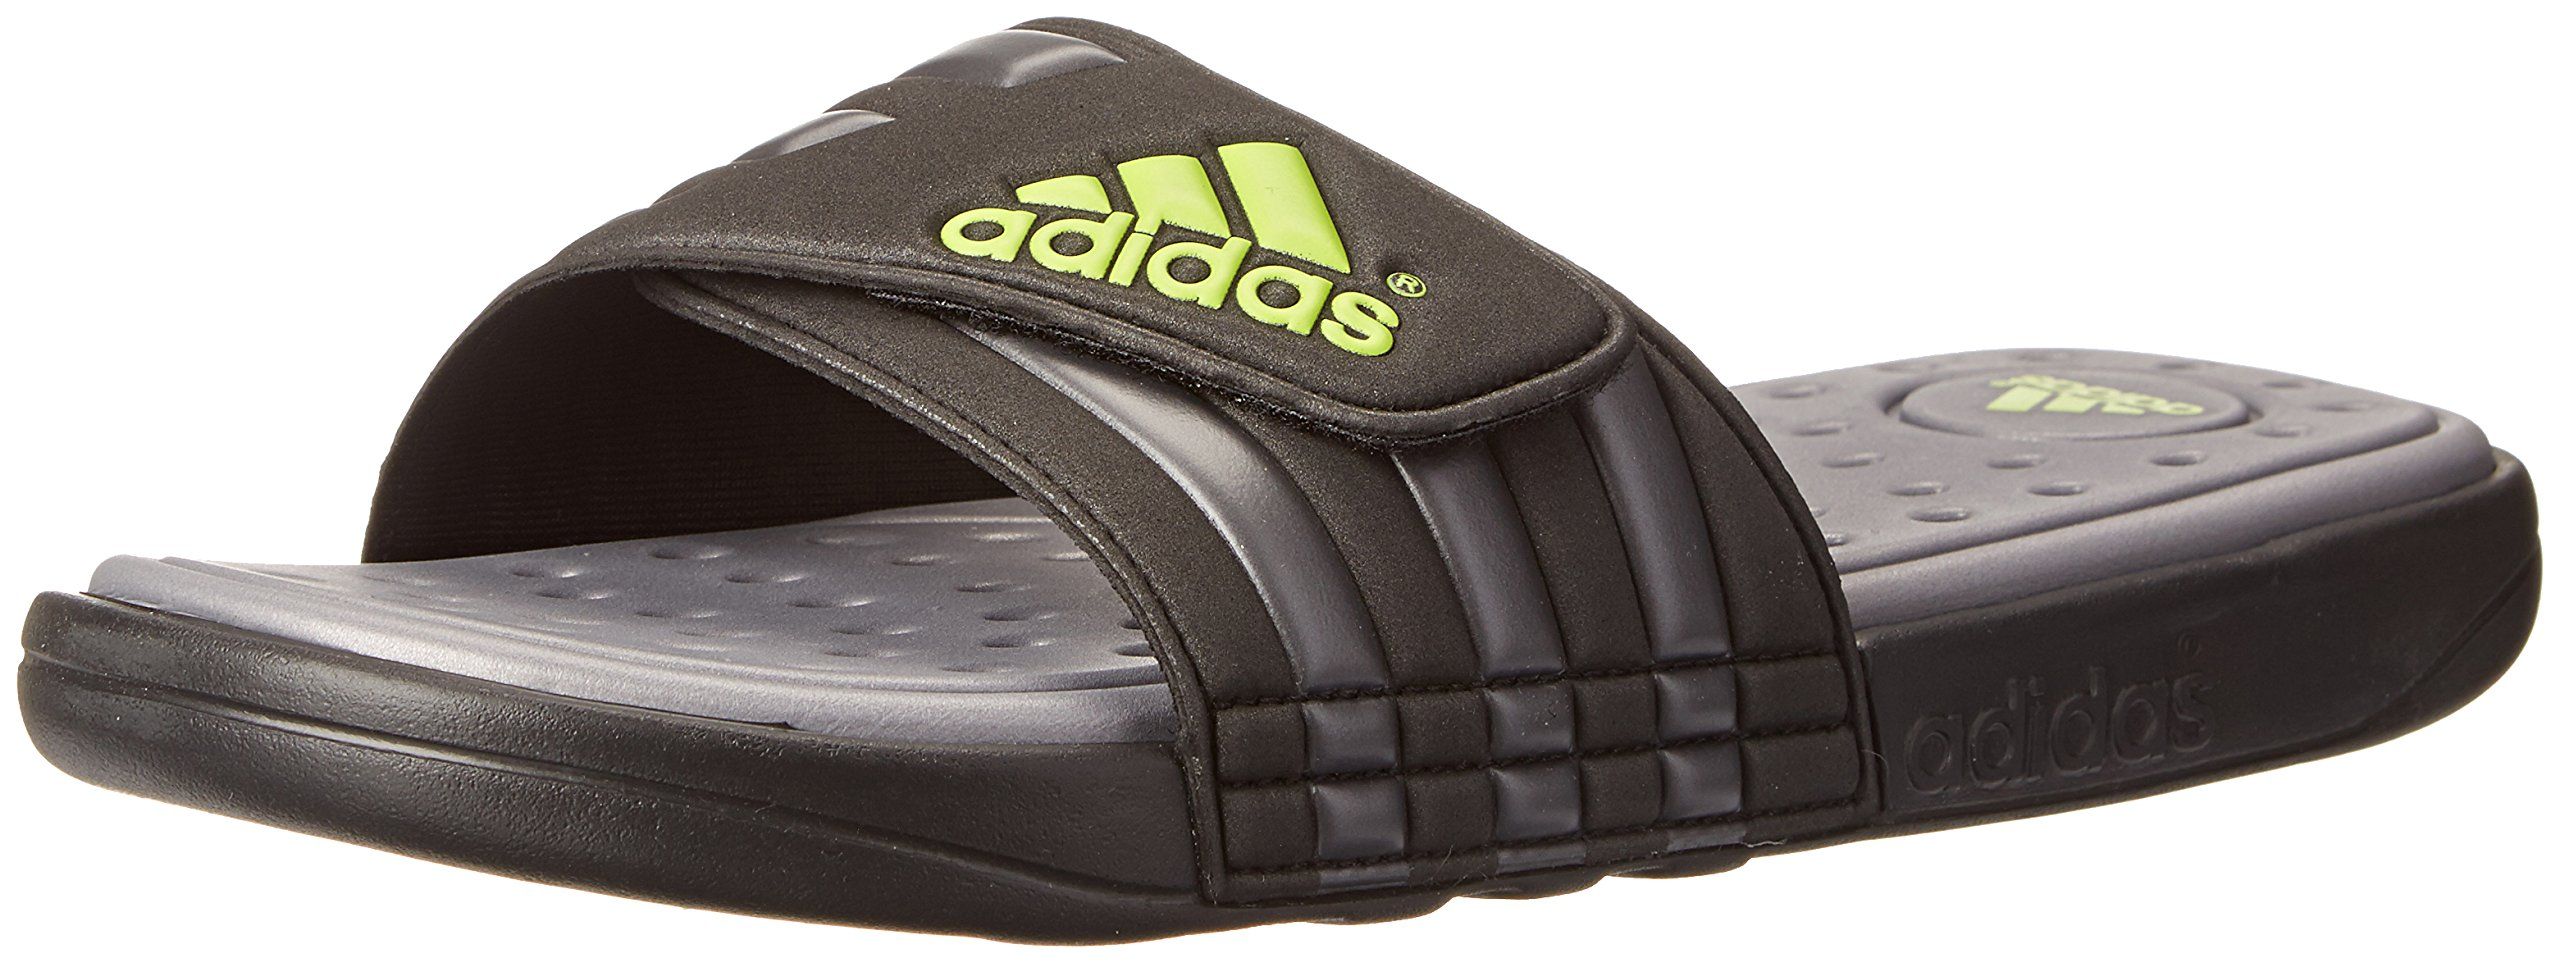 adidas Performance Men's adissage SC Sandal,Black/Grey/Green,12 M US by adidas